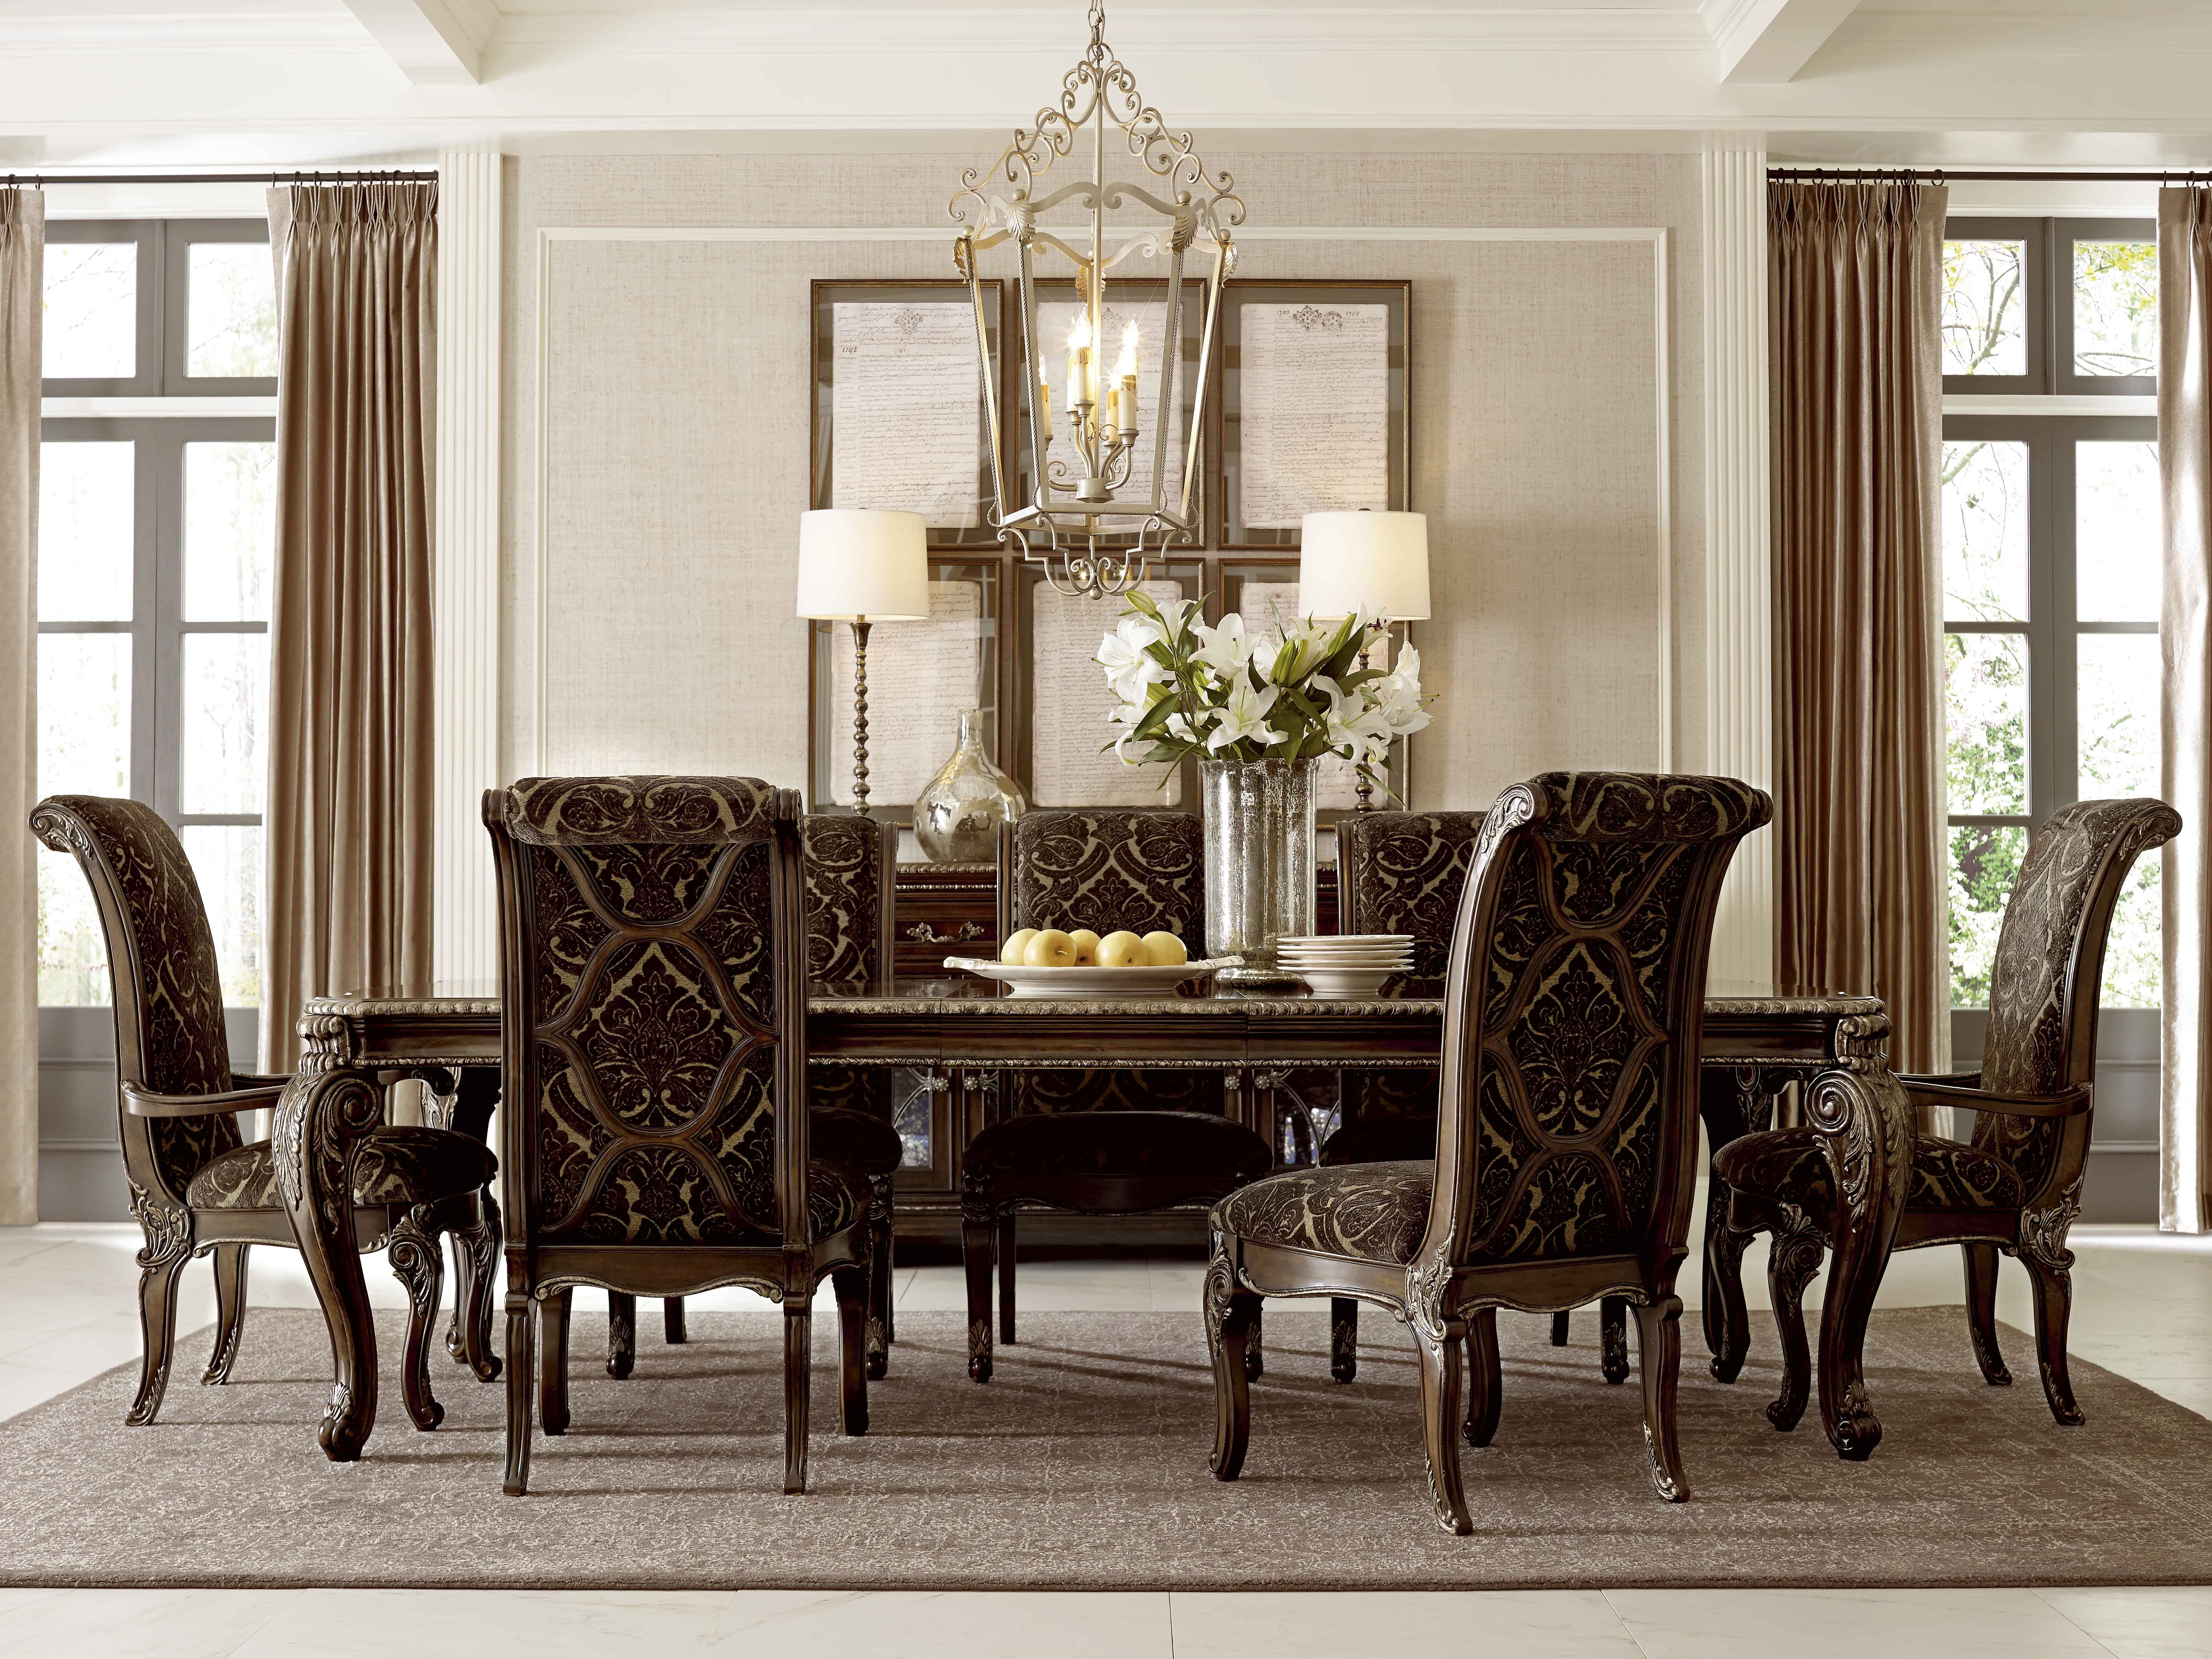 Formal dinner table decorations gables leg dining table with upholstered back chairs by art